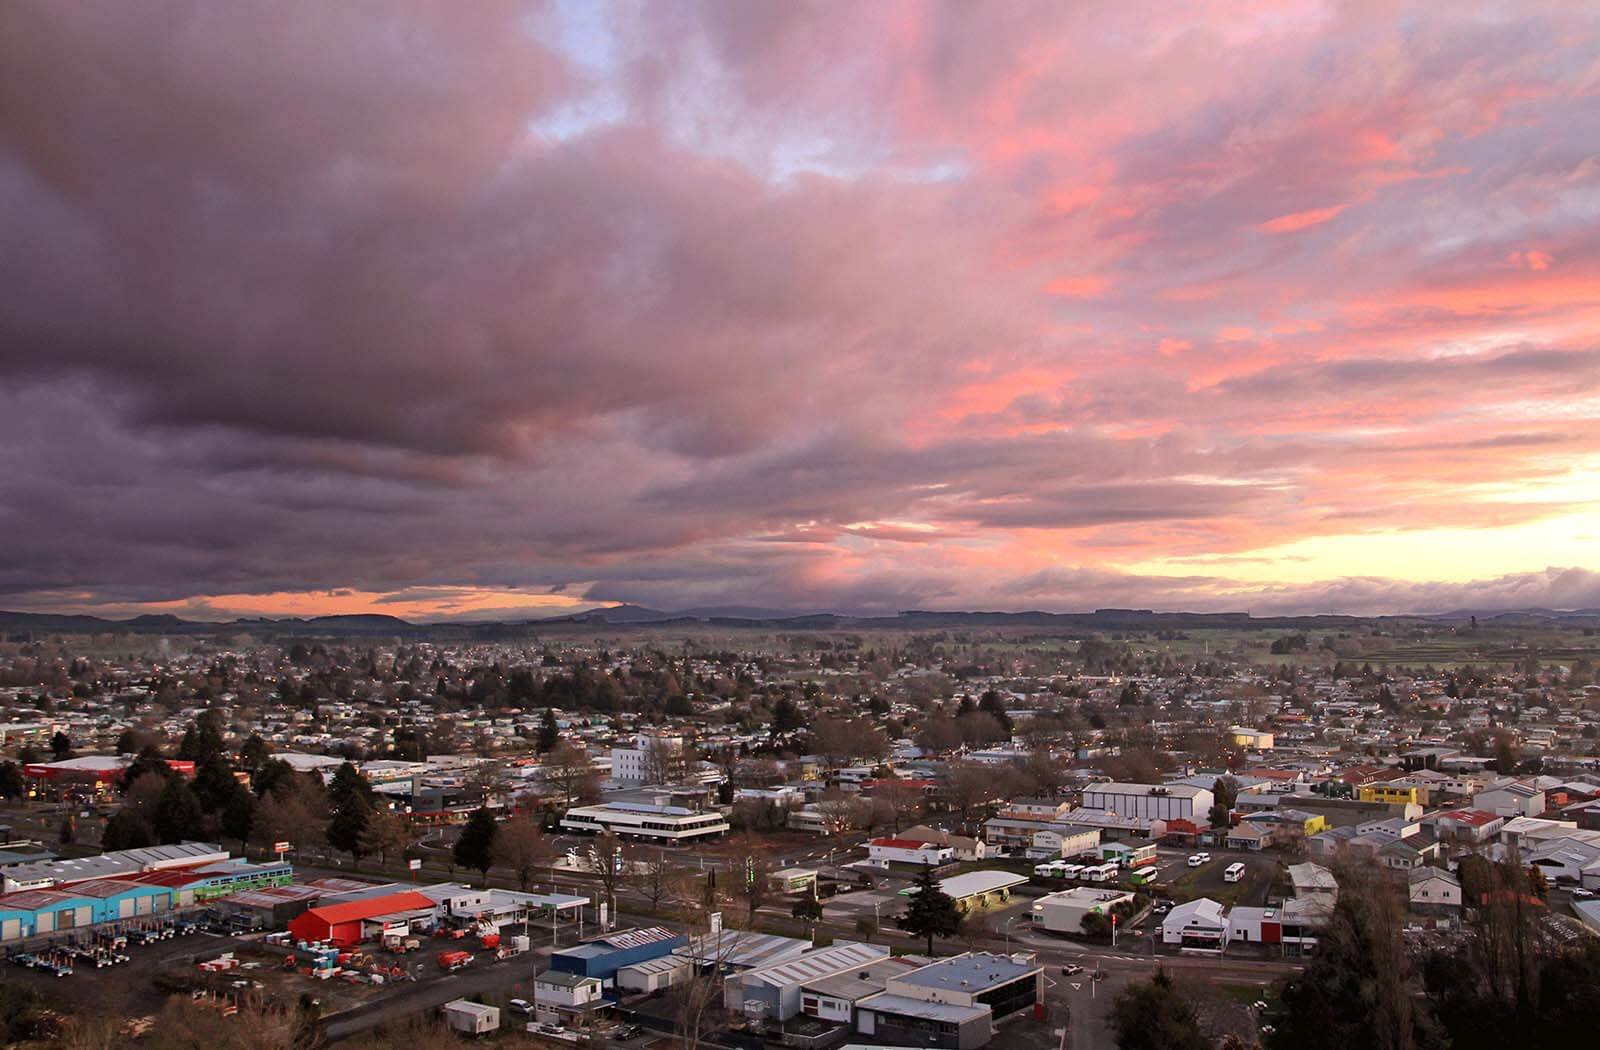 The South Waikato town of Tokoroa is open for business investment.